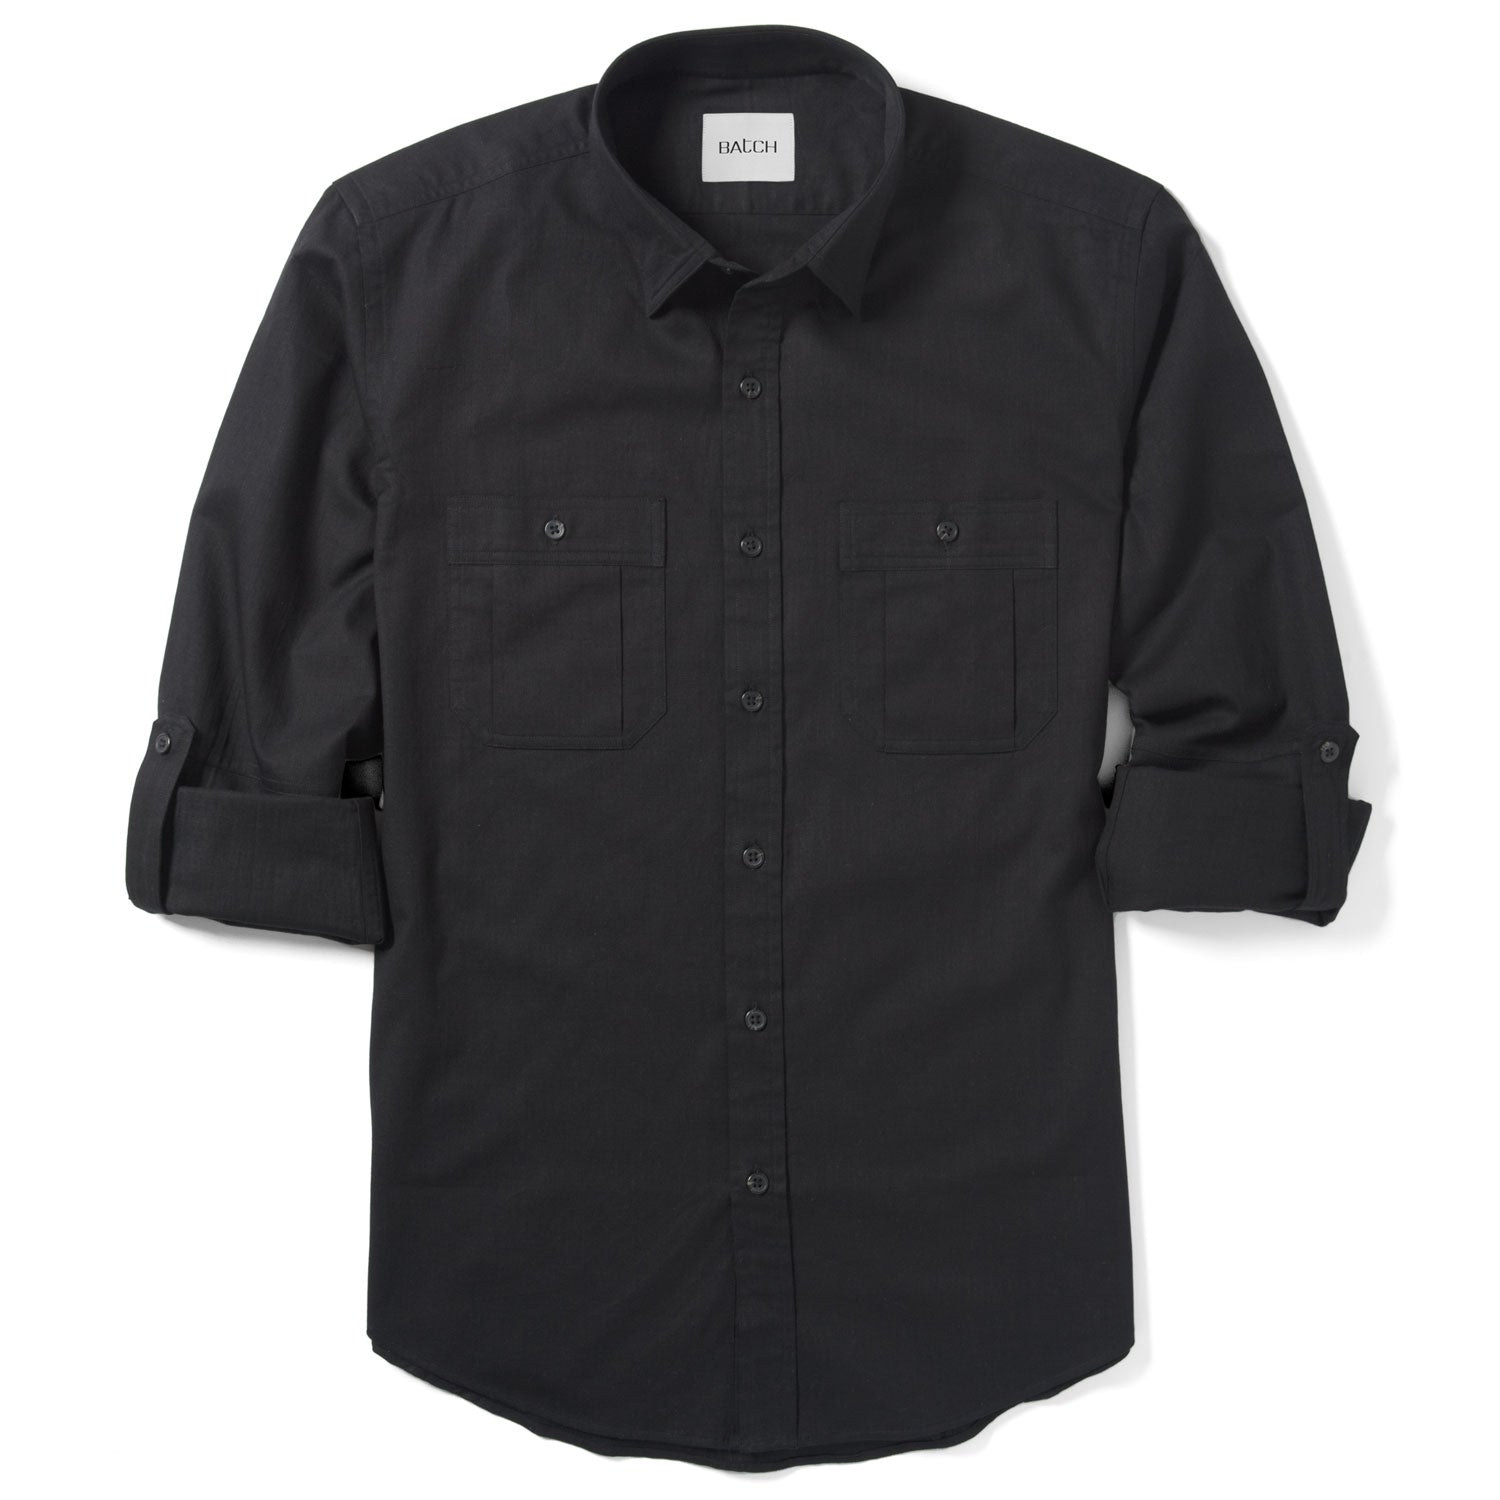 Fixer Utility Shirt – Jet Black Slub Twill